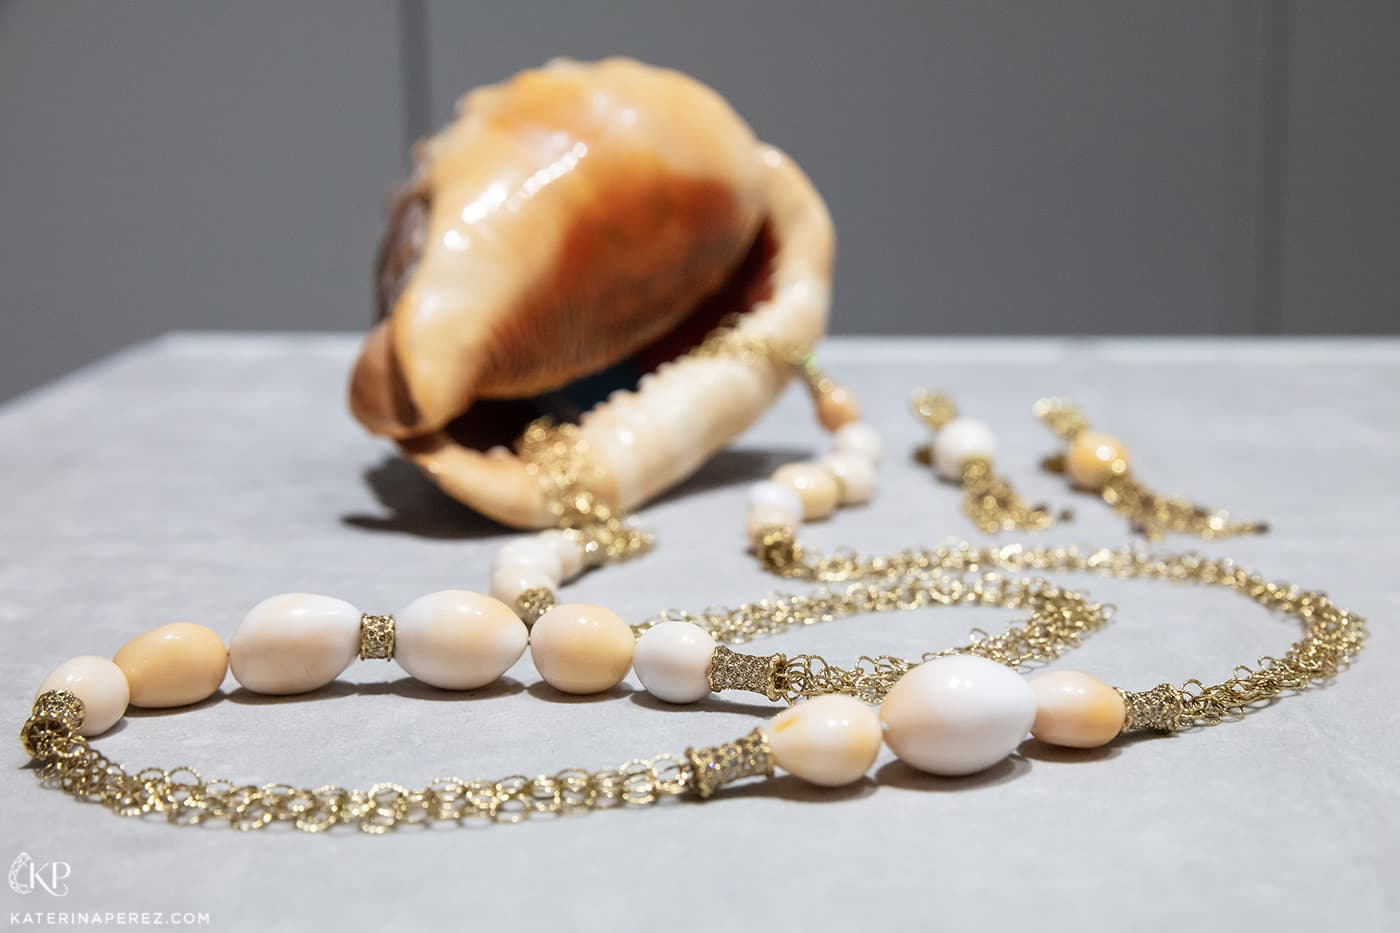 Shanghai Gems necklace and earrings with Cassis pearls and diamonds in yellow gold